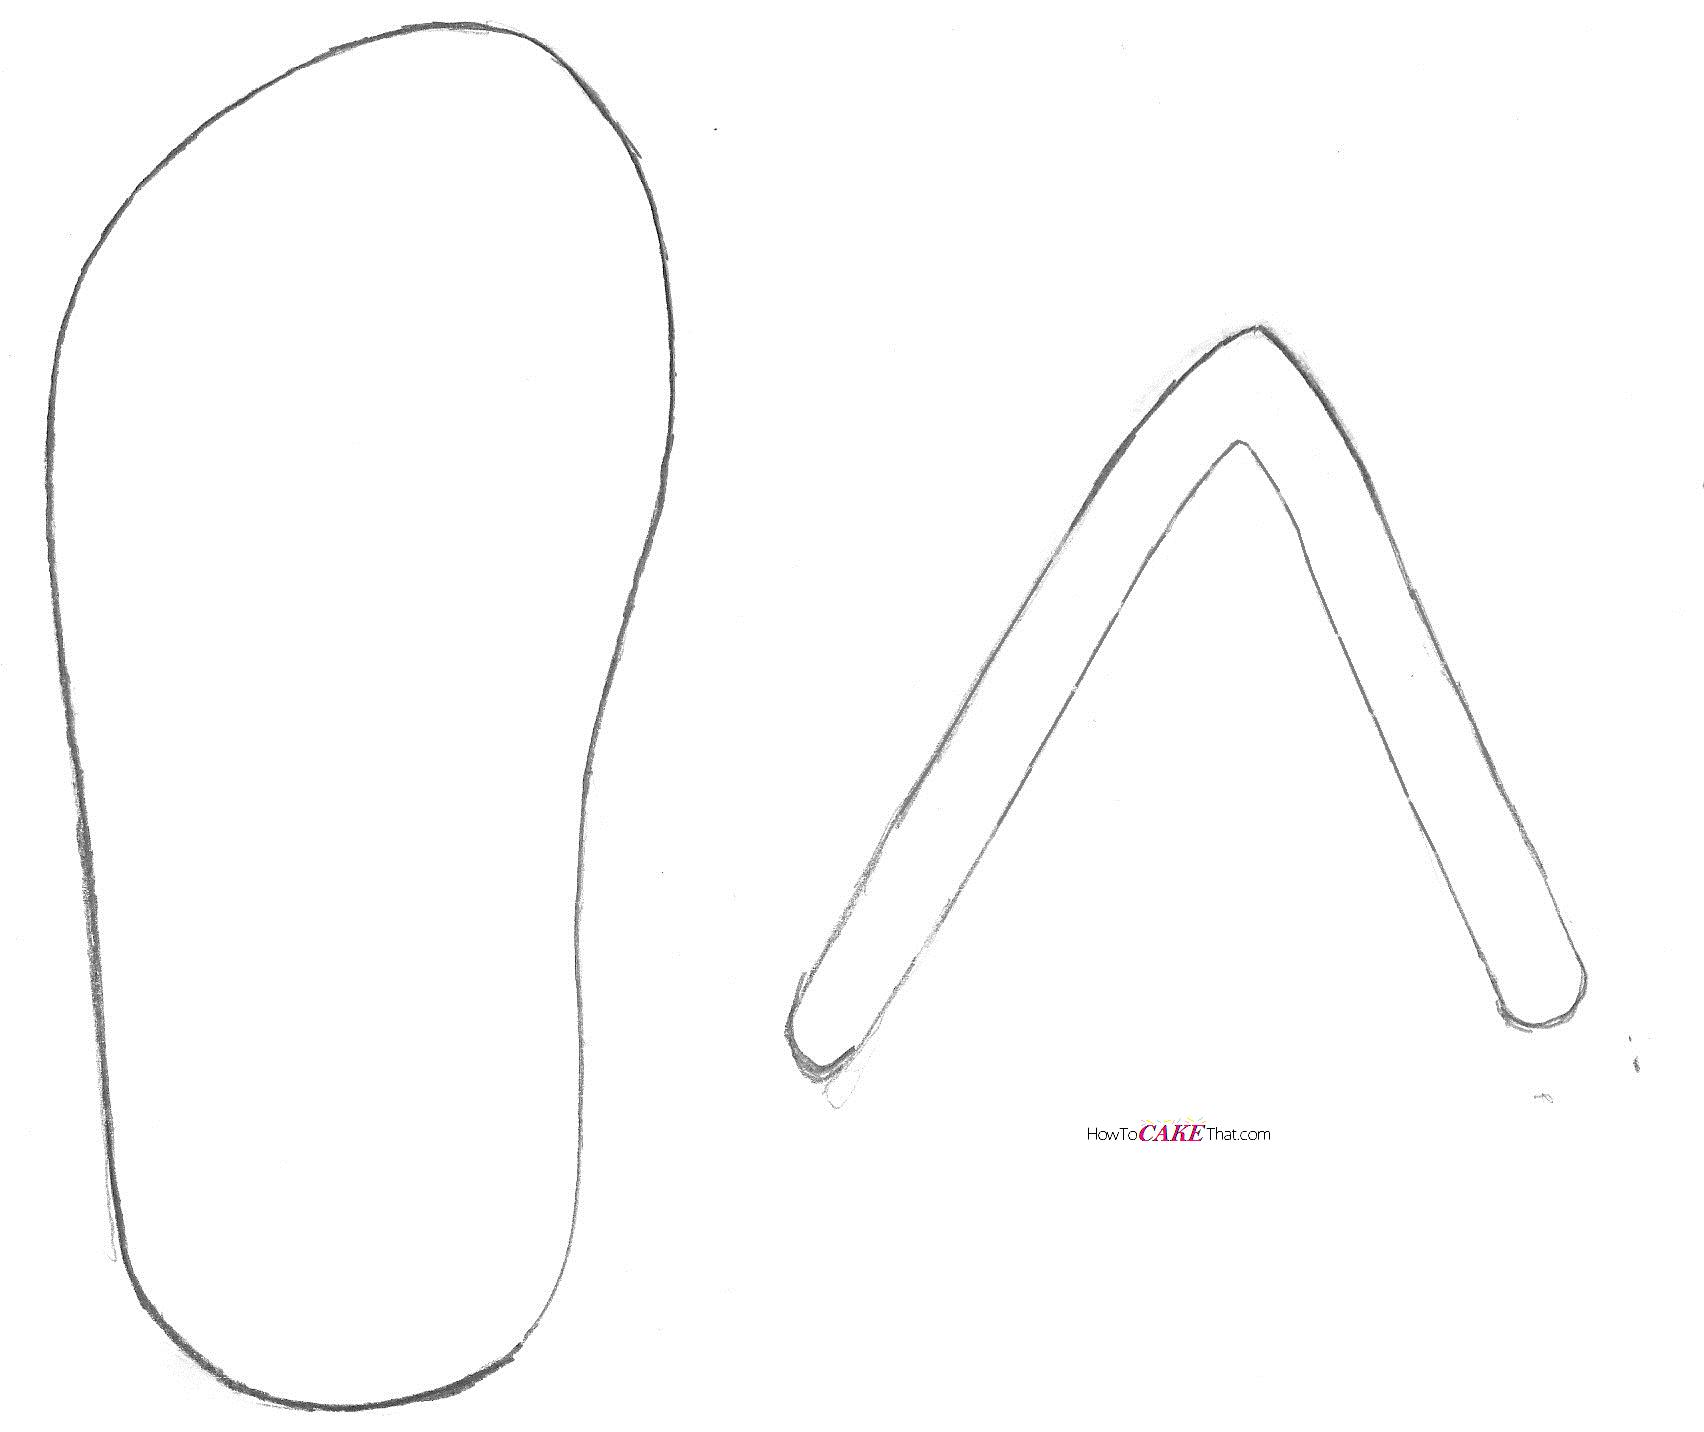 Flip Flop Drawing at GetDrawings.com | Free for personal use Flip ...